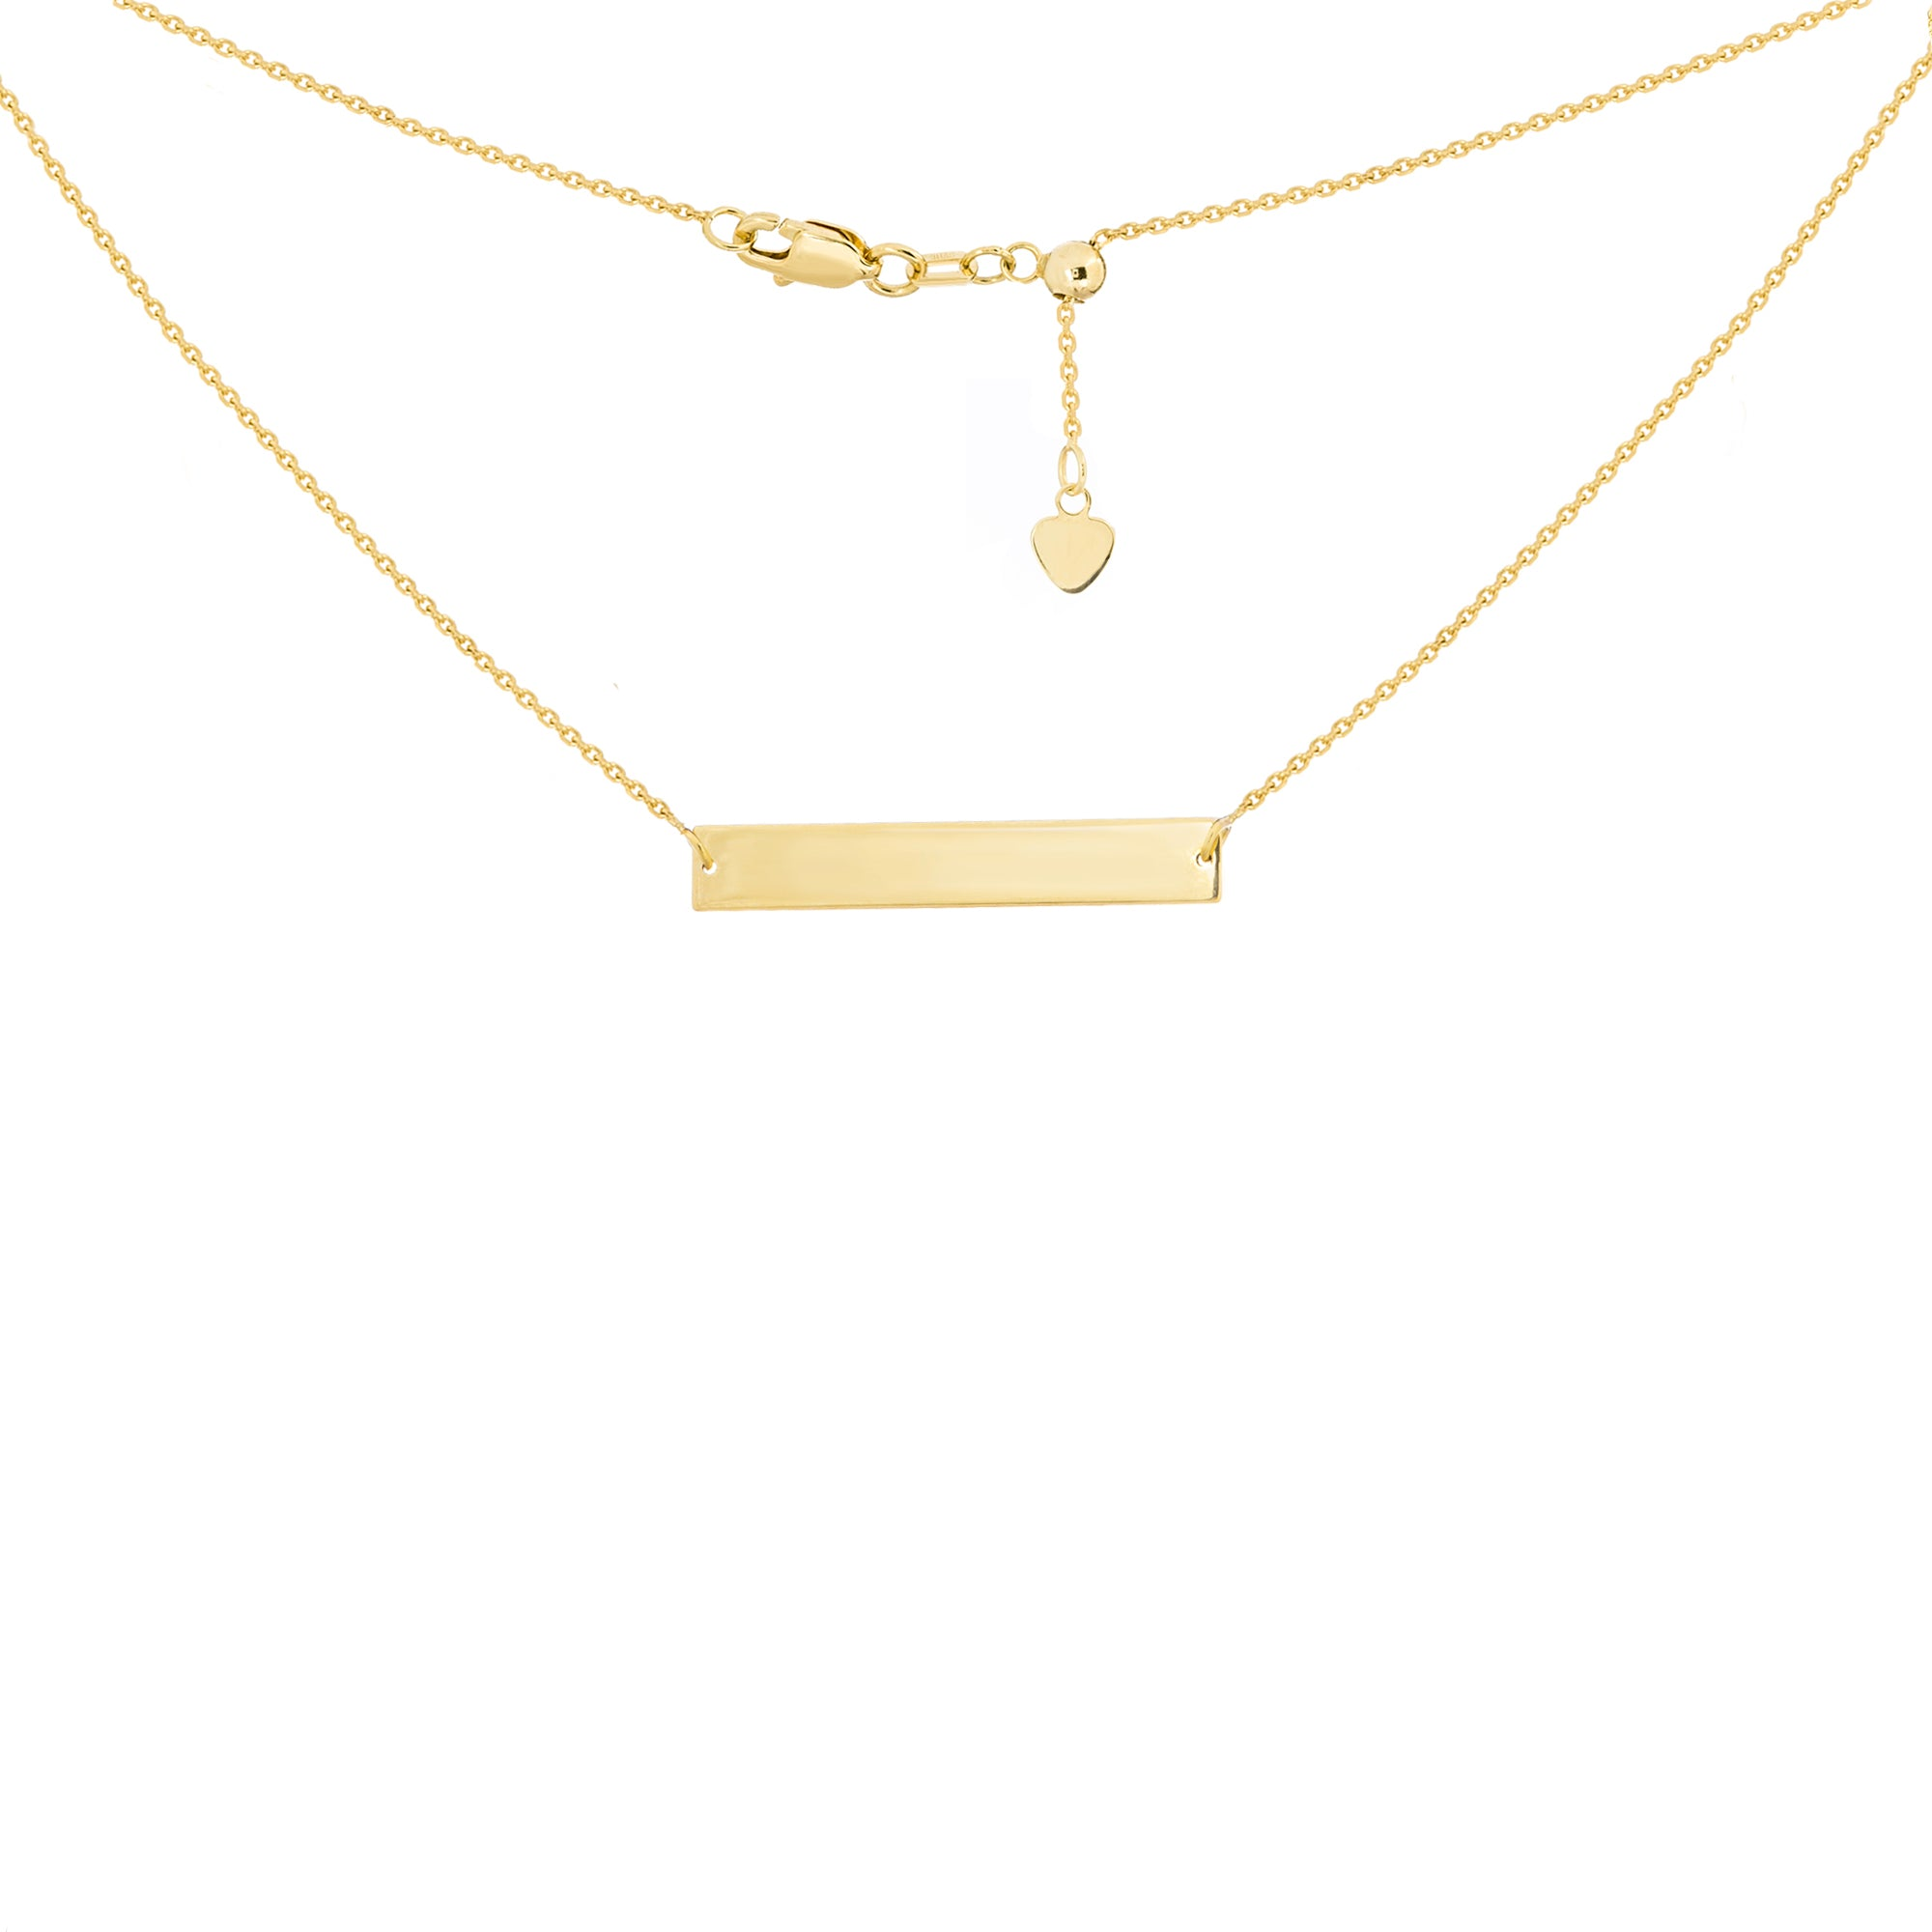 14K Yellow Gold Bar Plate Adjustable Choker Necklace